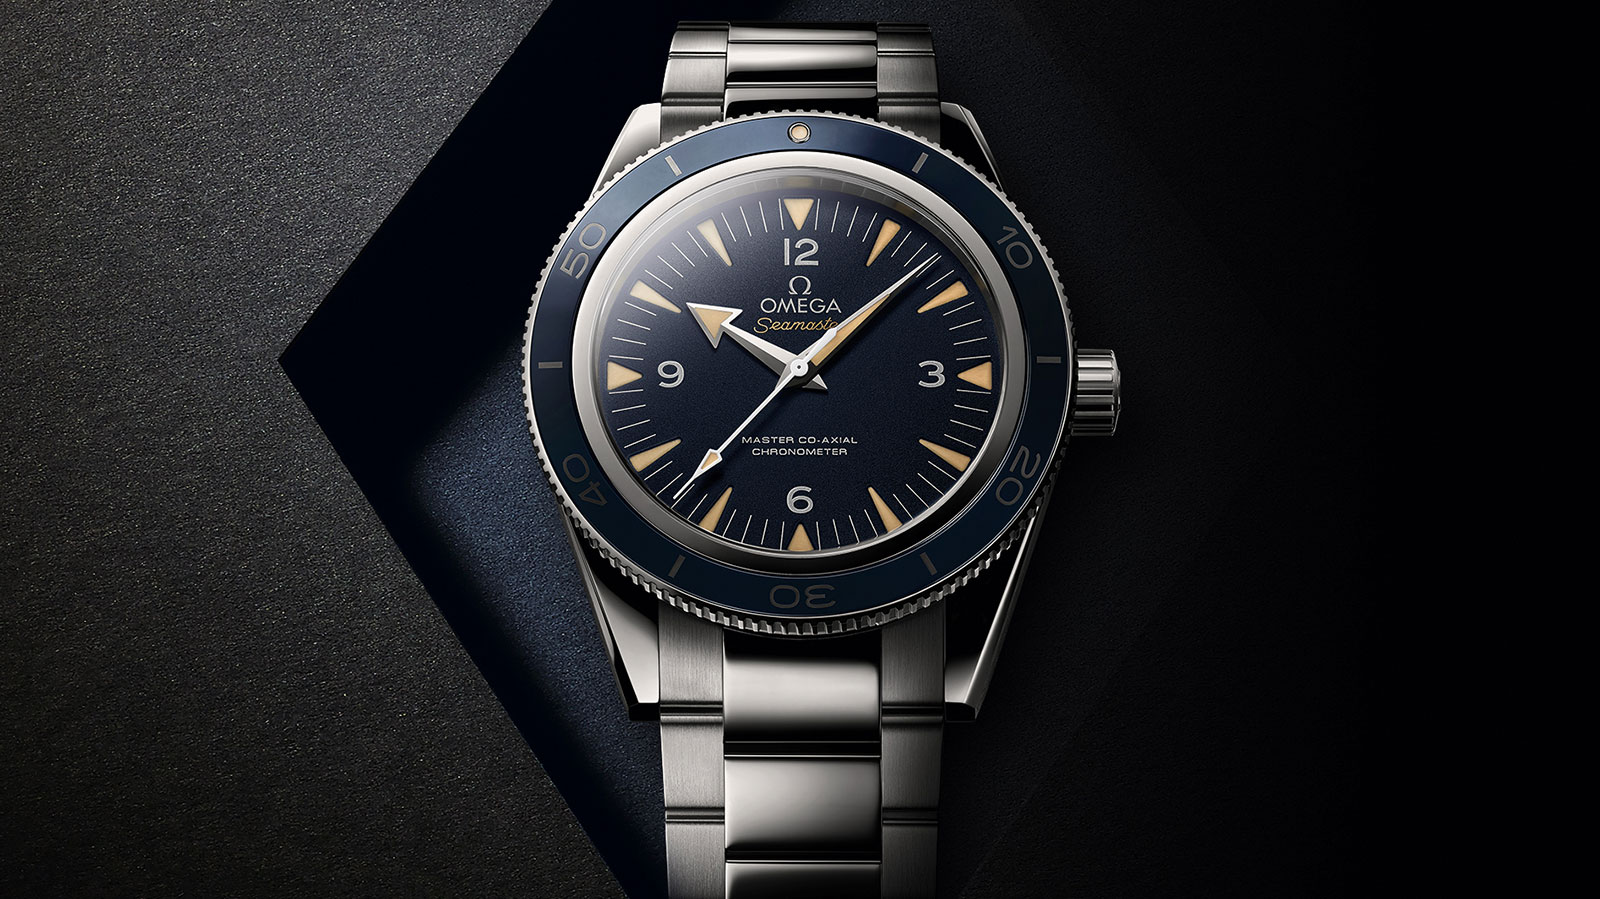 Seamaster Seamaster 300 Seamaster 300 Omega Master Co‑Axial 41 mm Watch - 233.90.41.21.03.001